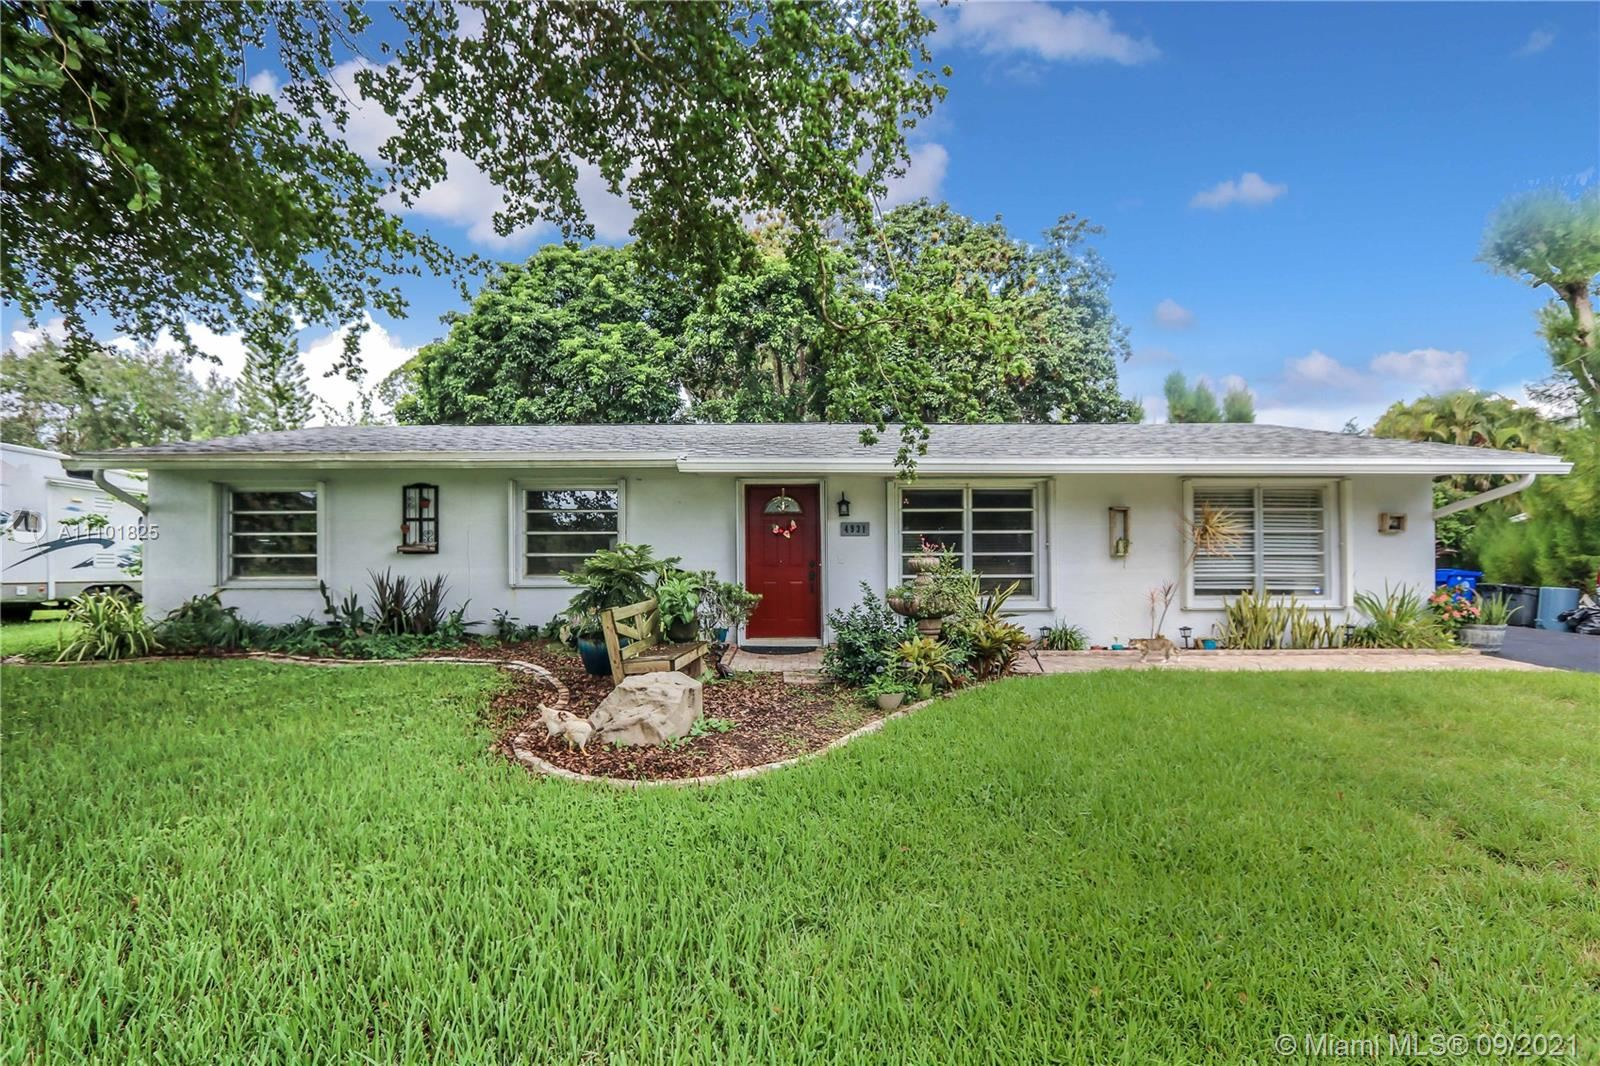 4931 SW 188th Ave, SouthWest Ranches, FL 33332 - #: A11101825